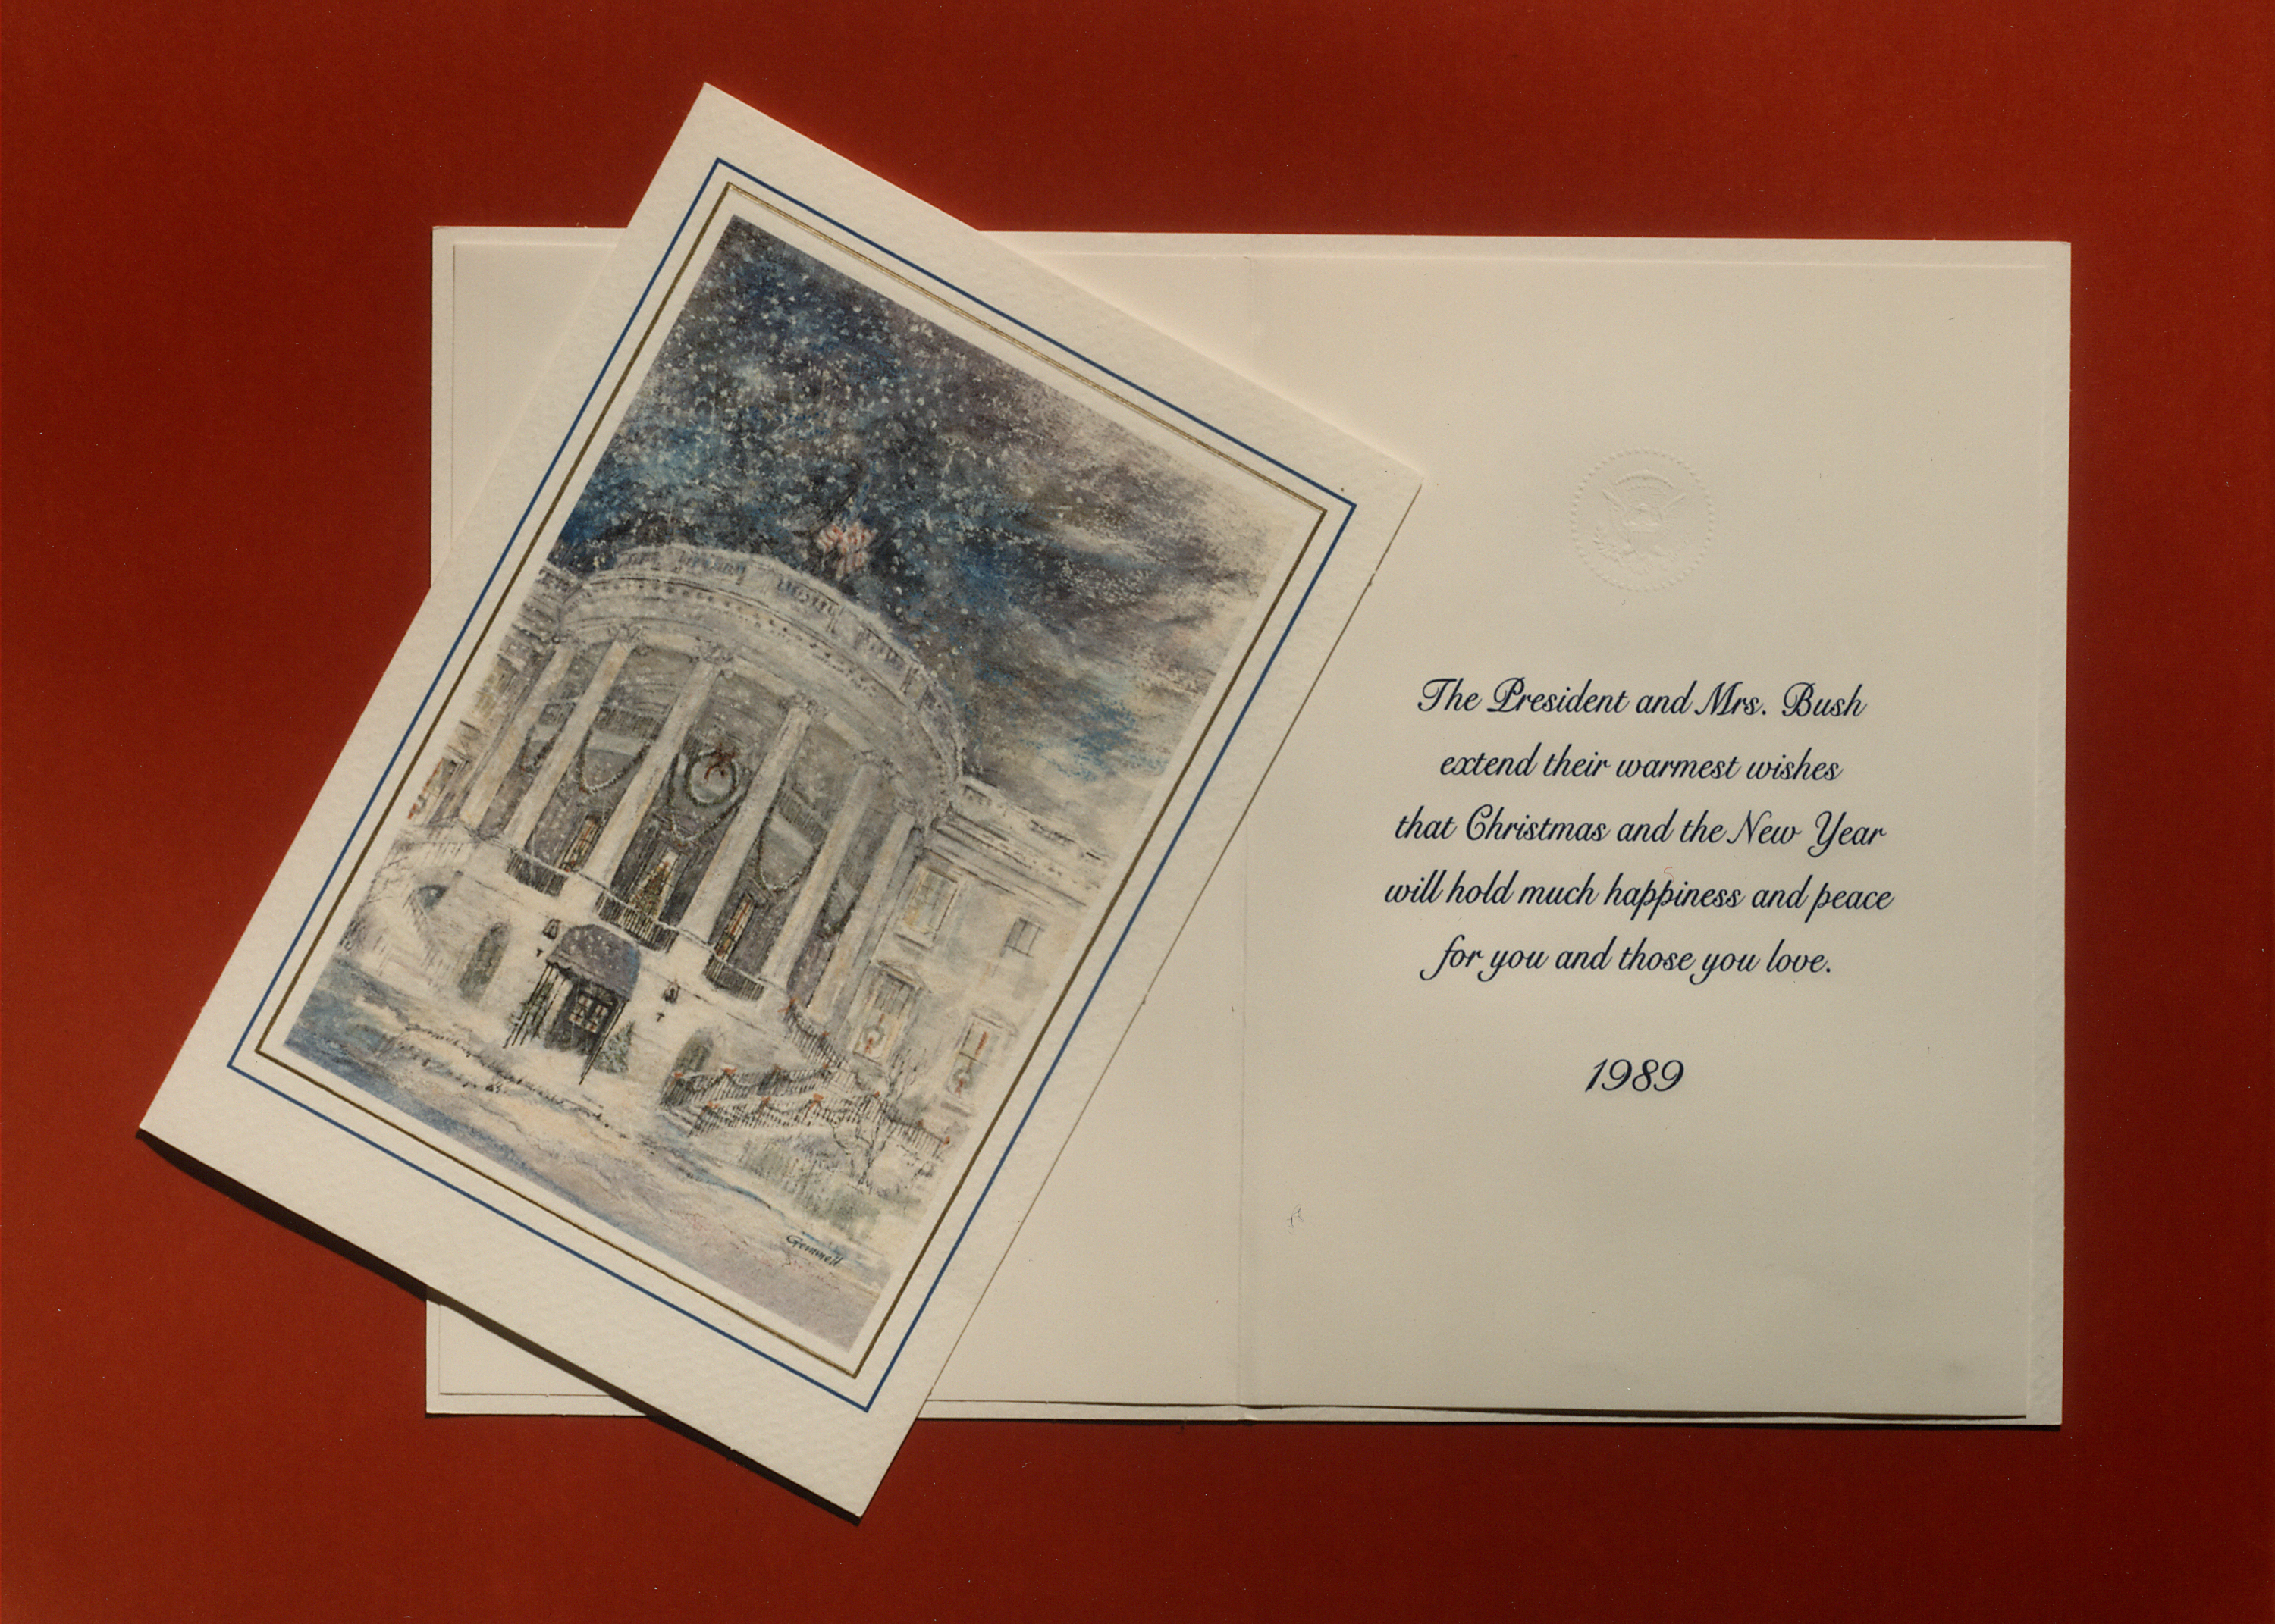 The war of words behind happy holidays history in the headlines white house christmas card from george h w bush 1989 credit white house kristyandbryce Image collections